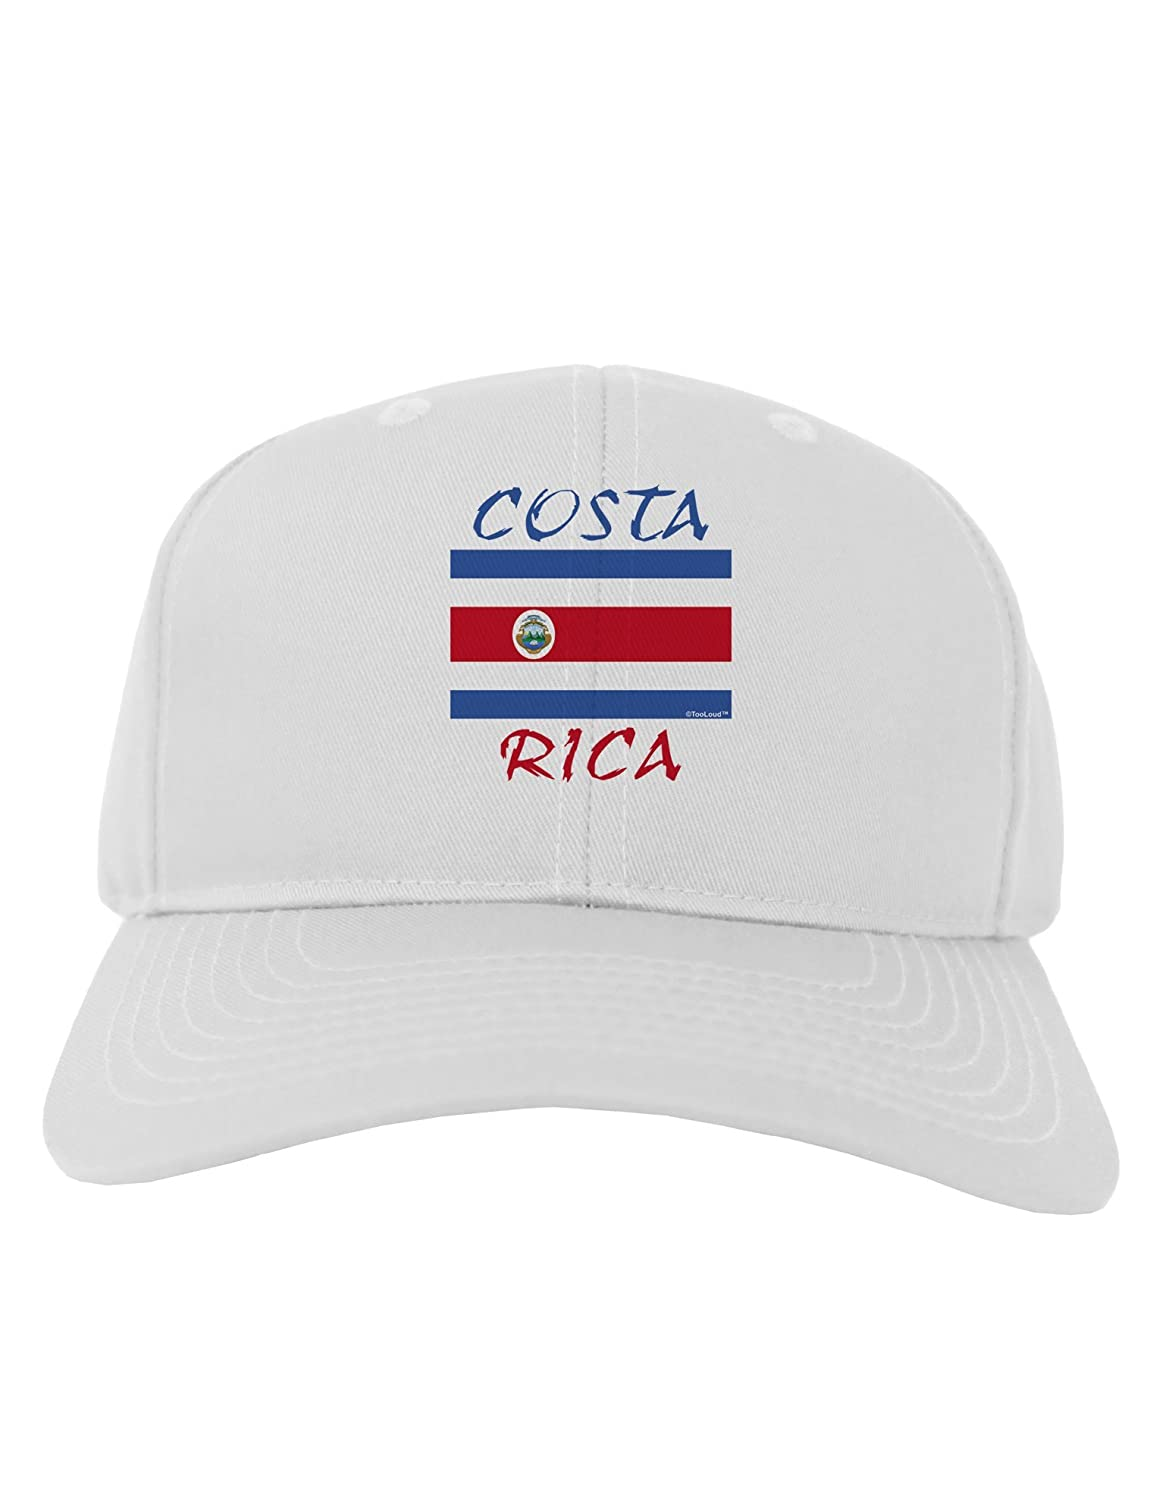 bb0174fc94d Amazon.com  TooLoud Costa Rica Flag Adult Baseball Cap Hat - White  Clothing